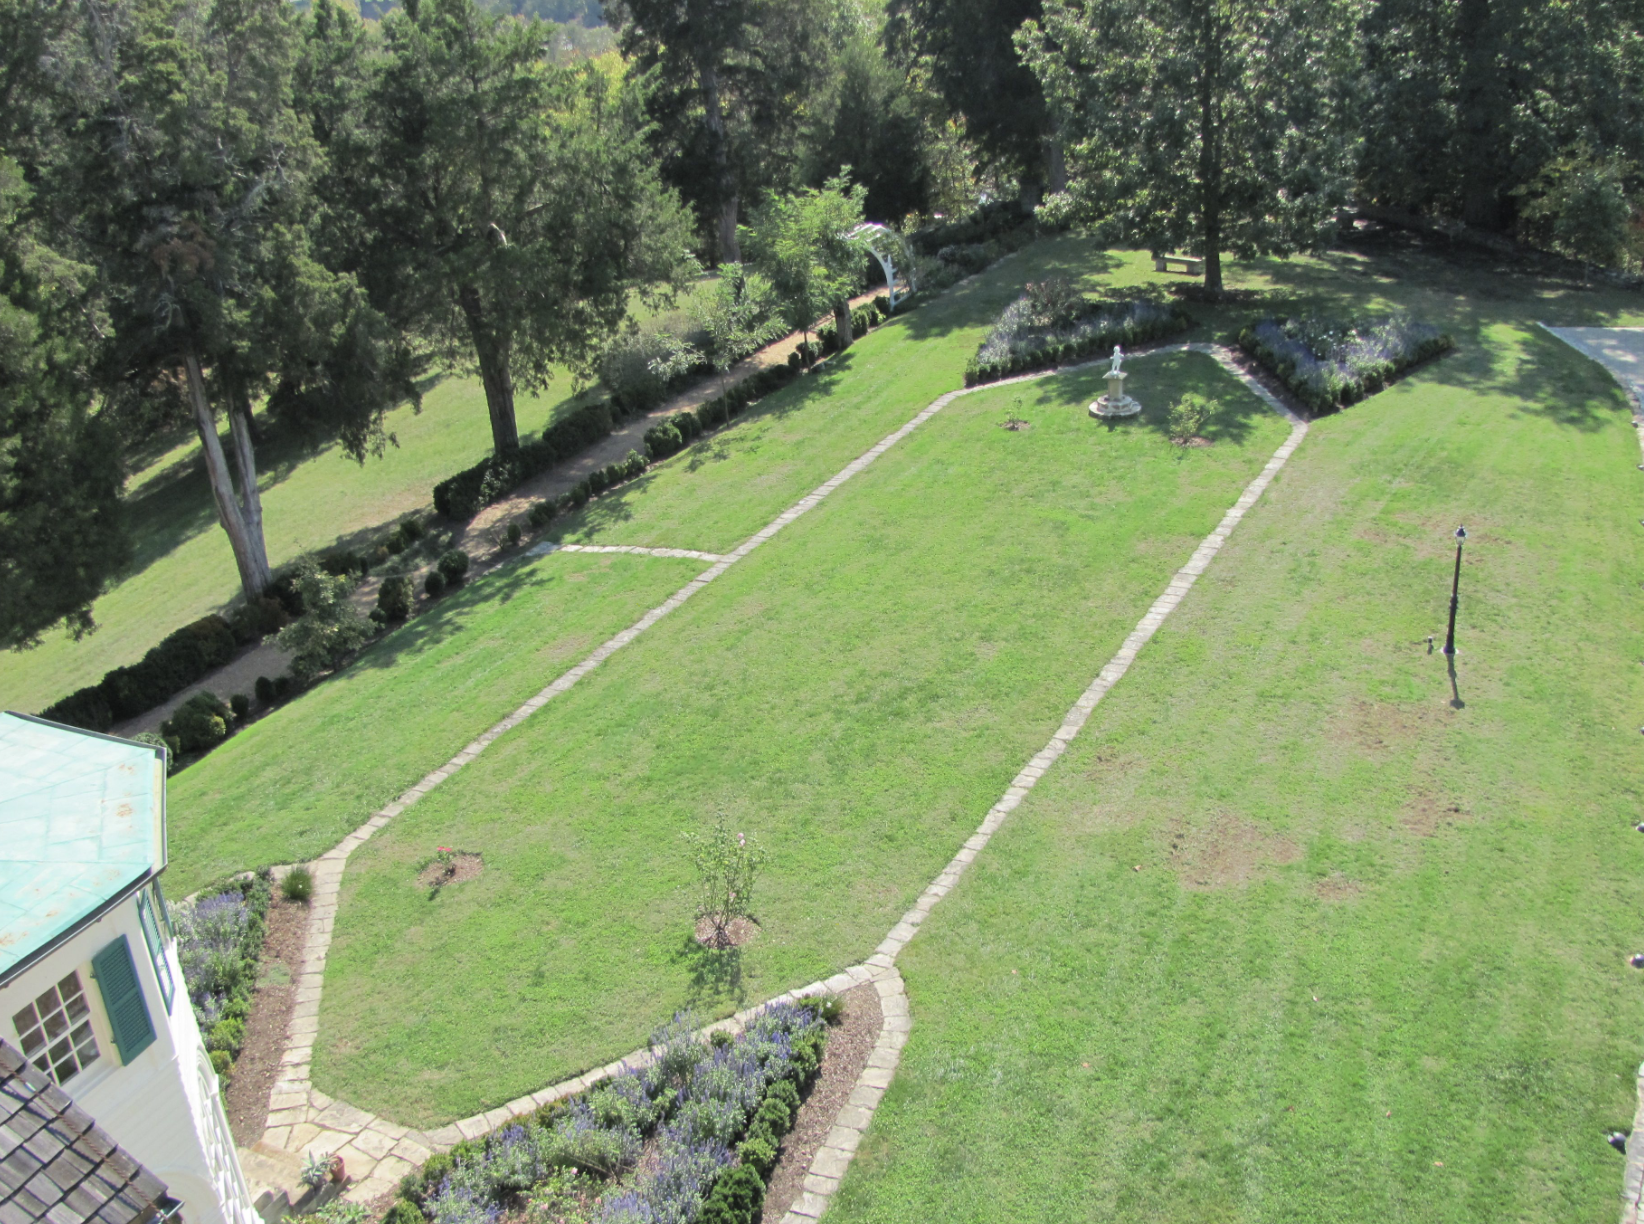 Formal Garden and Paths, Aerial View